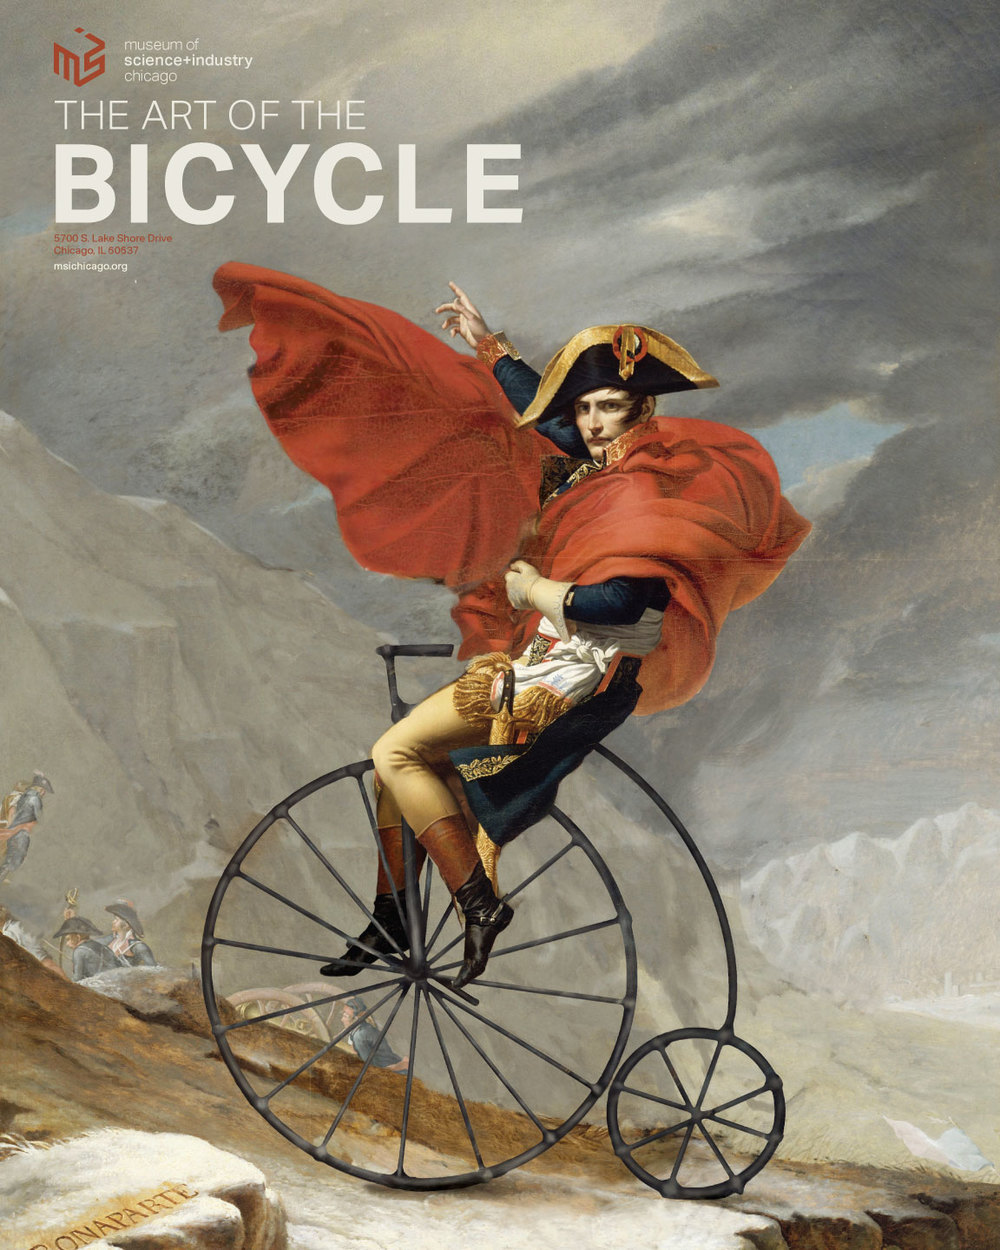 artofthebicycle.jpg